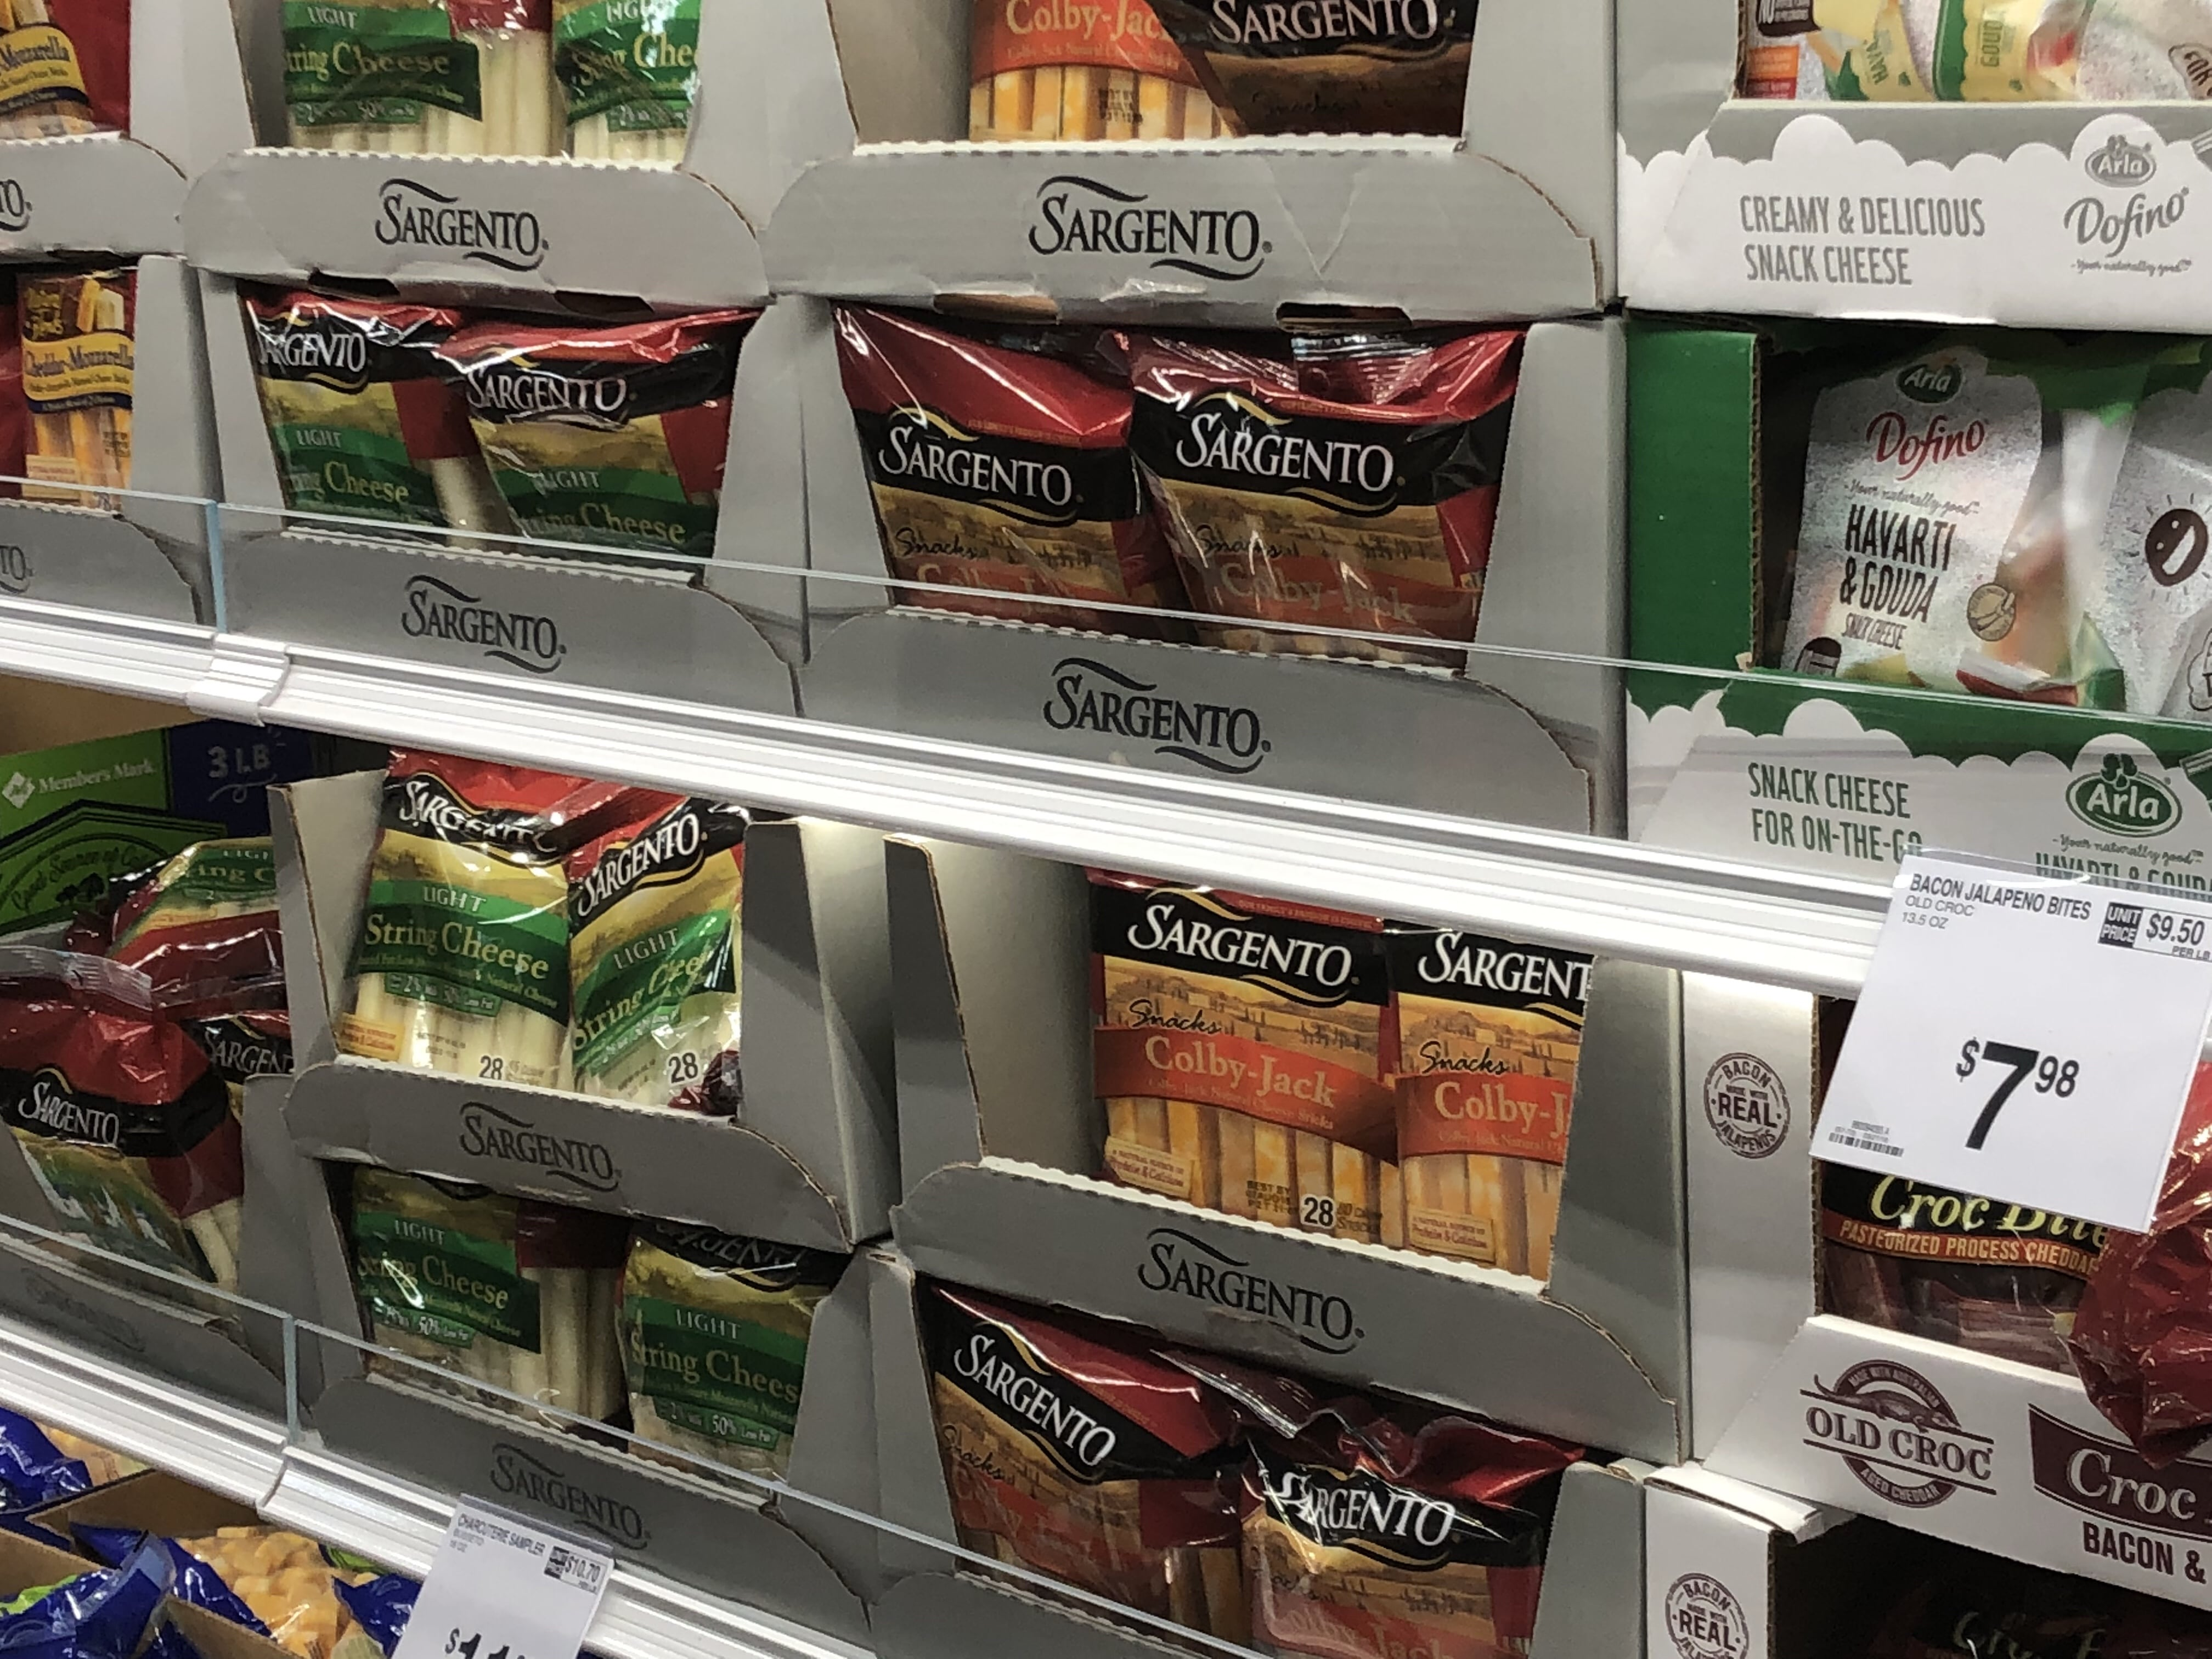 Keto Food Items at Sam's Club